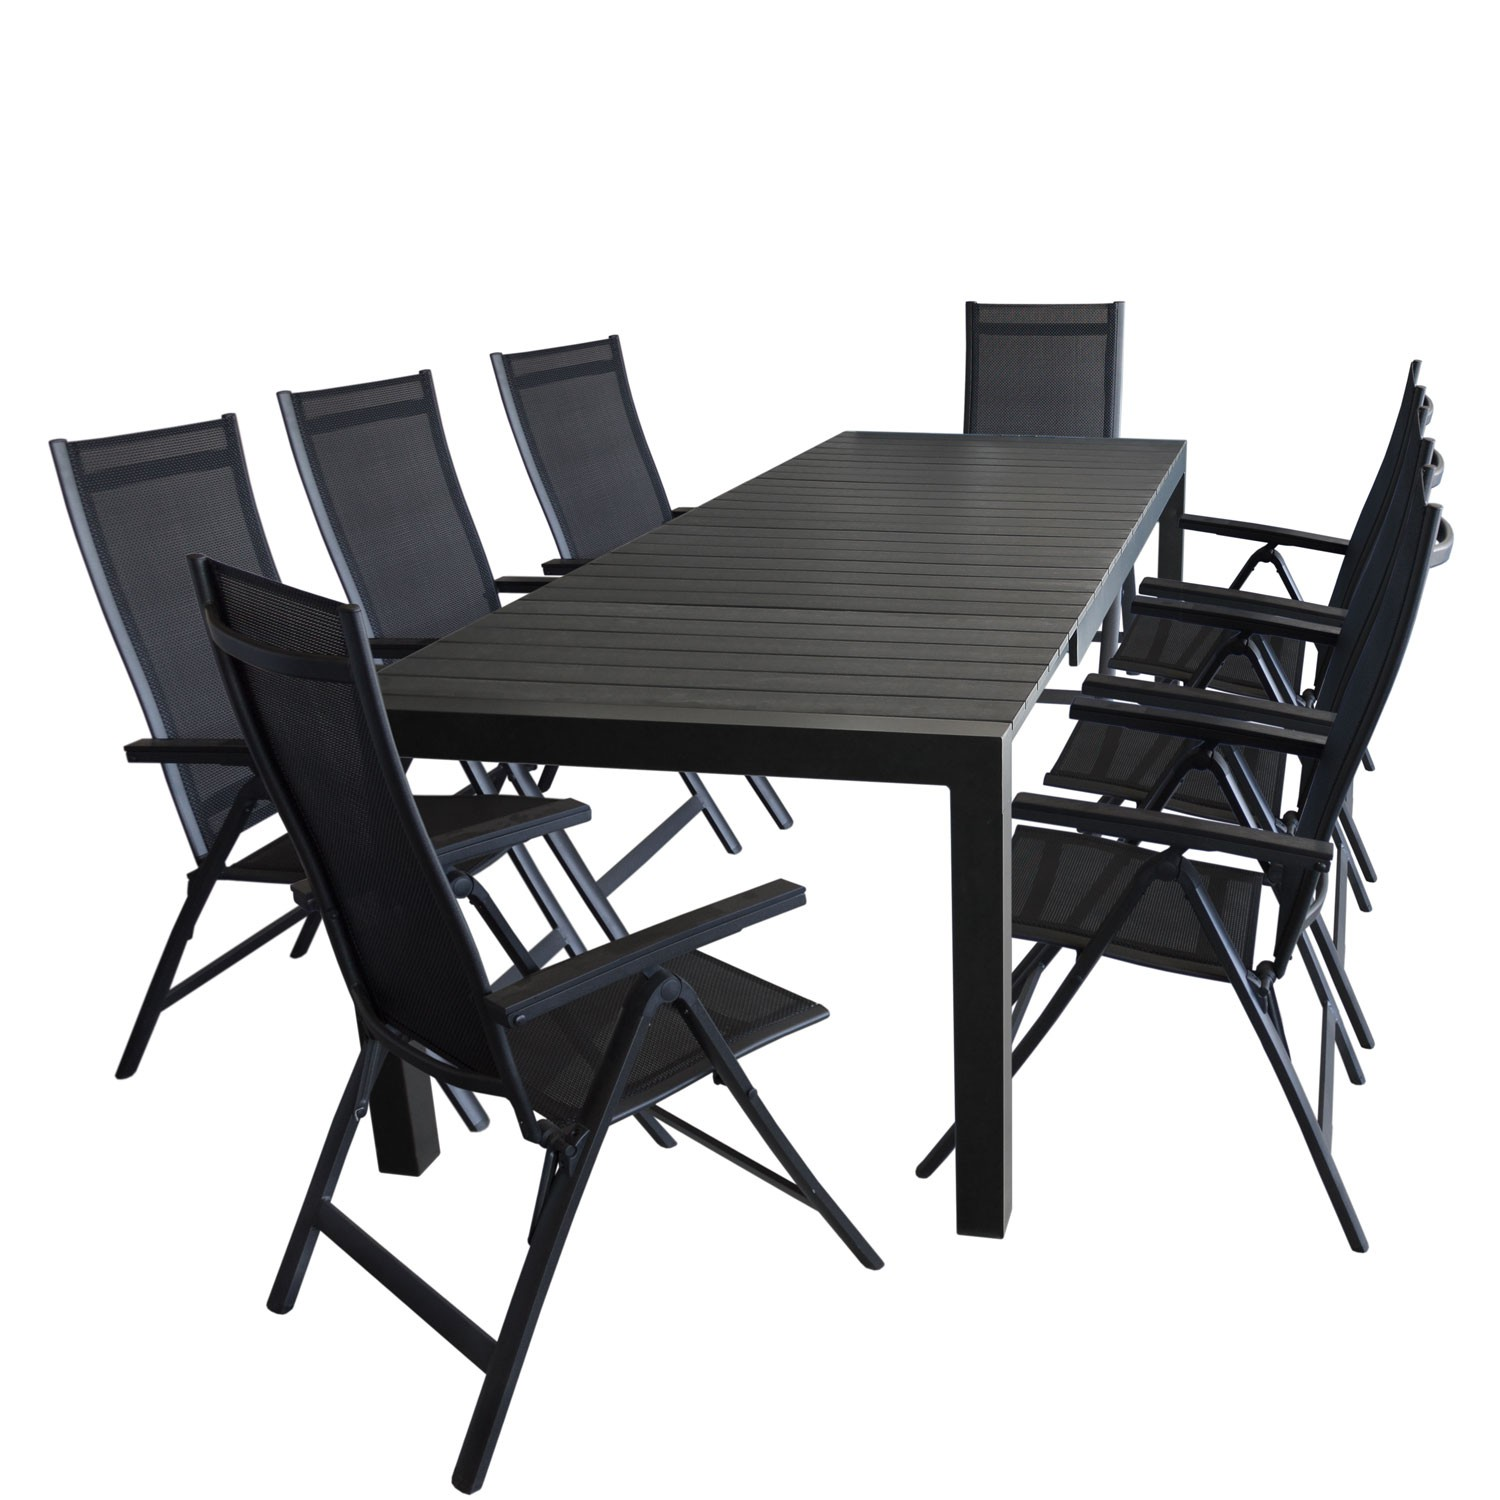 gartengarnitur aluminium hochlehner gartentisch ausziehbar 205 275x100cm 9tlg ebay. Black Bedroom Furniture Sets. Home Design Ideas